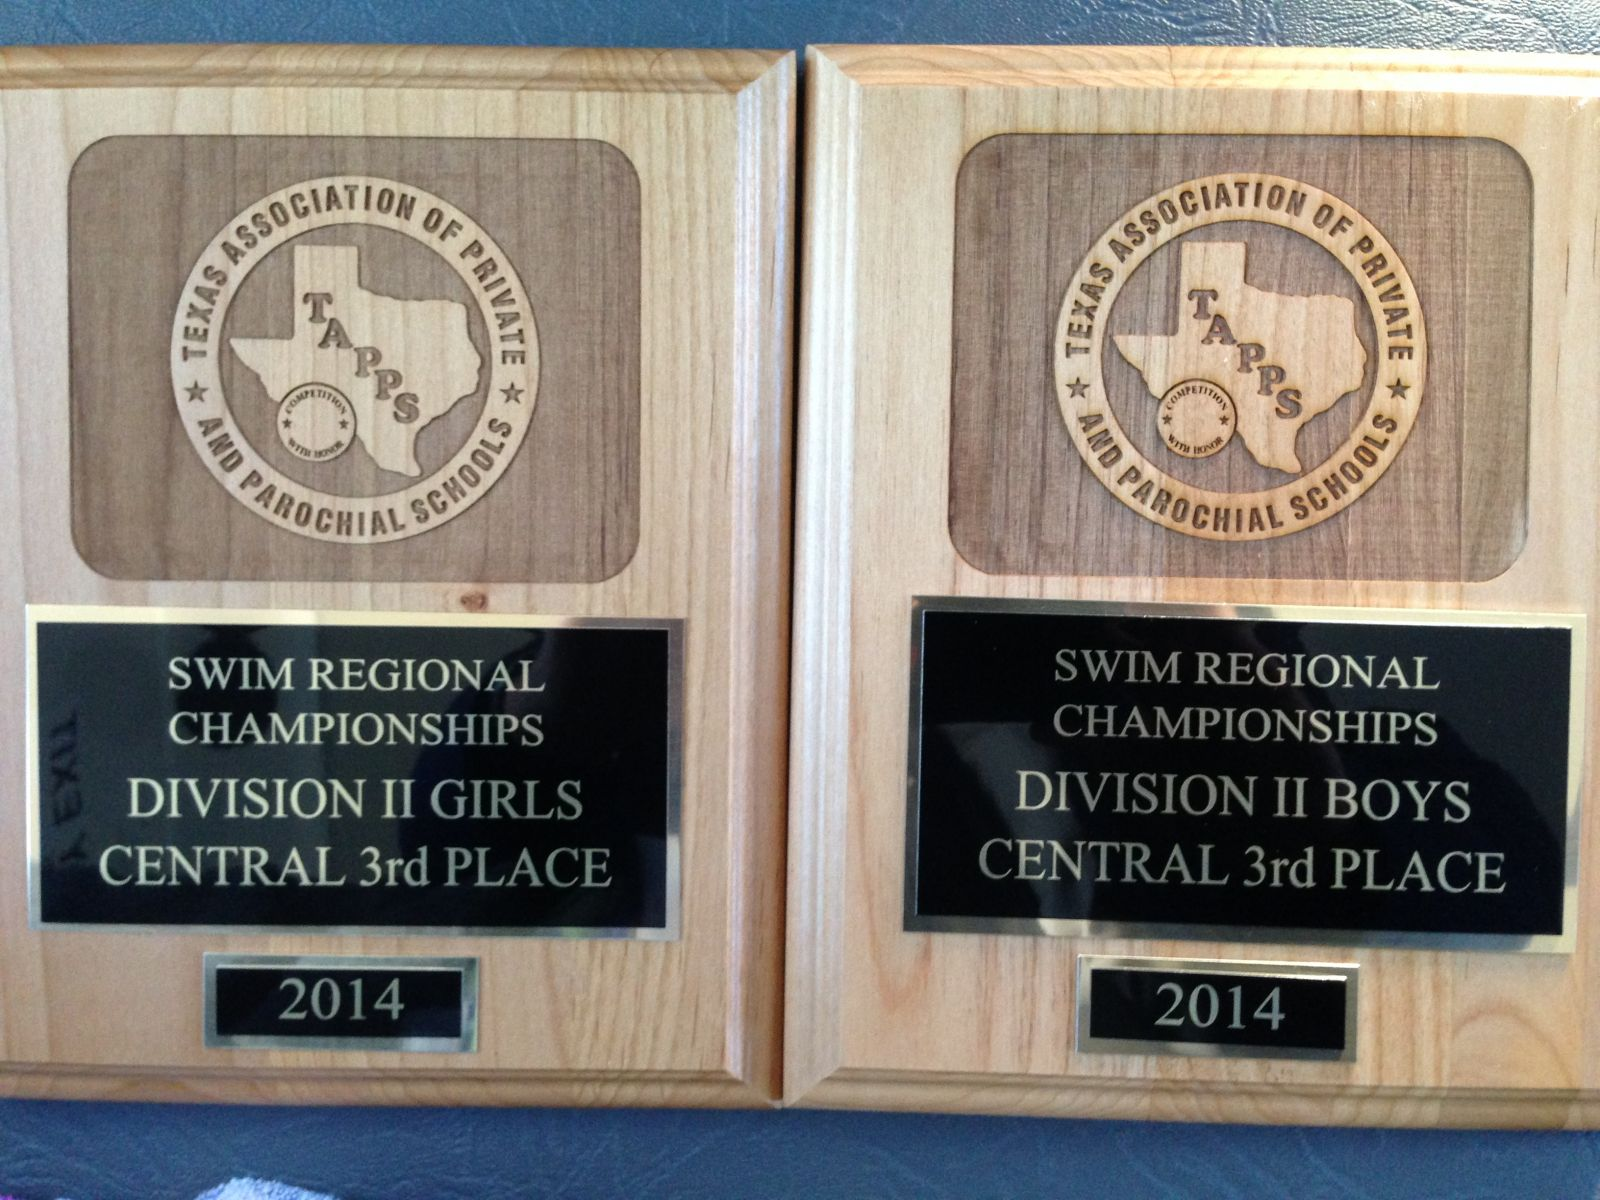 2014 Regionals 3rd Place Boys and Girls